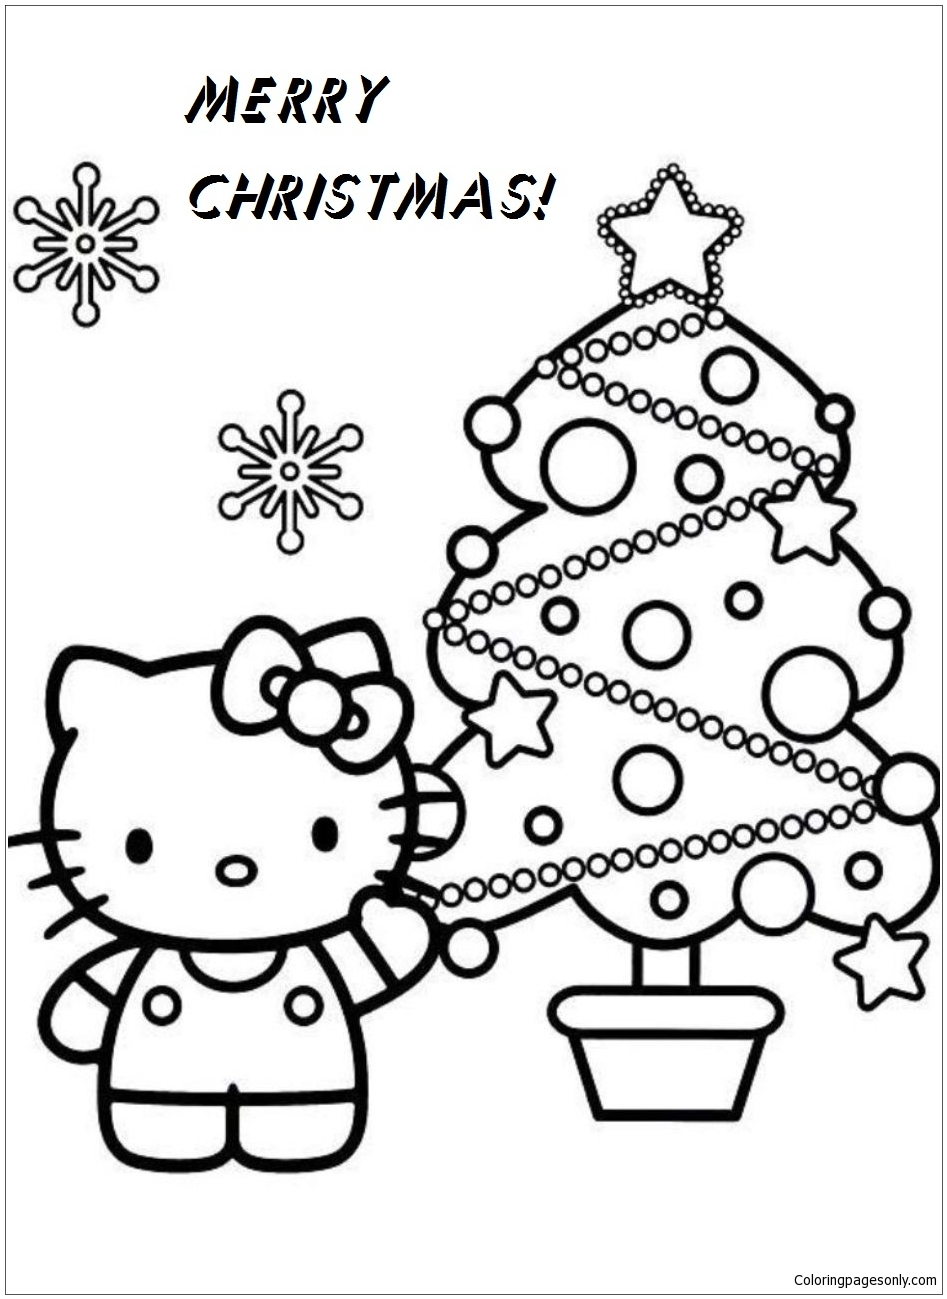 Hello Kitty Christmas Coloring Pages : hello, kitty, christmas, coloring, pages, Hello, Kitty, Christmas, Coloring, Pages, Cartoons, Printable, Online